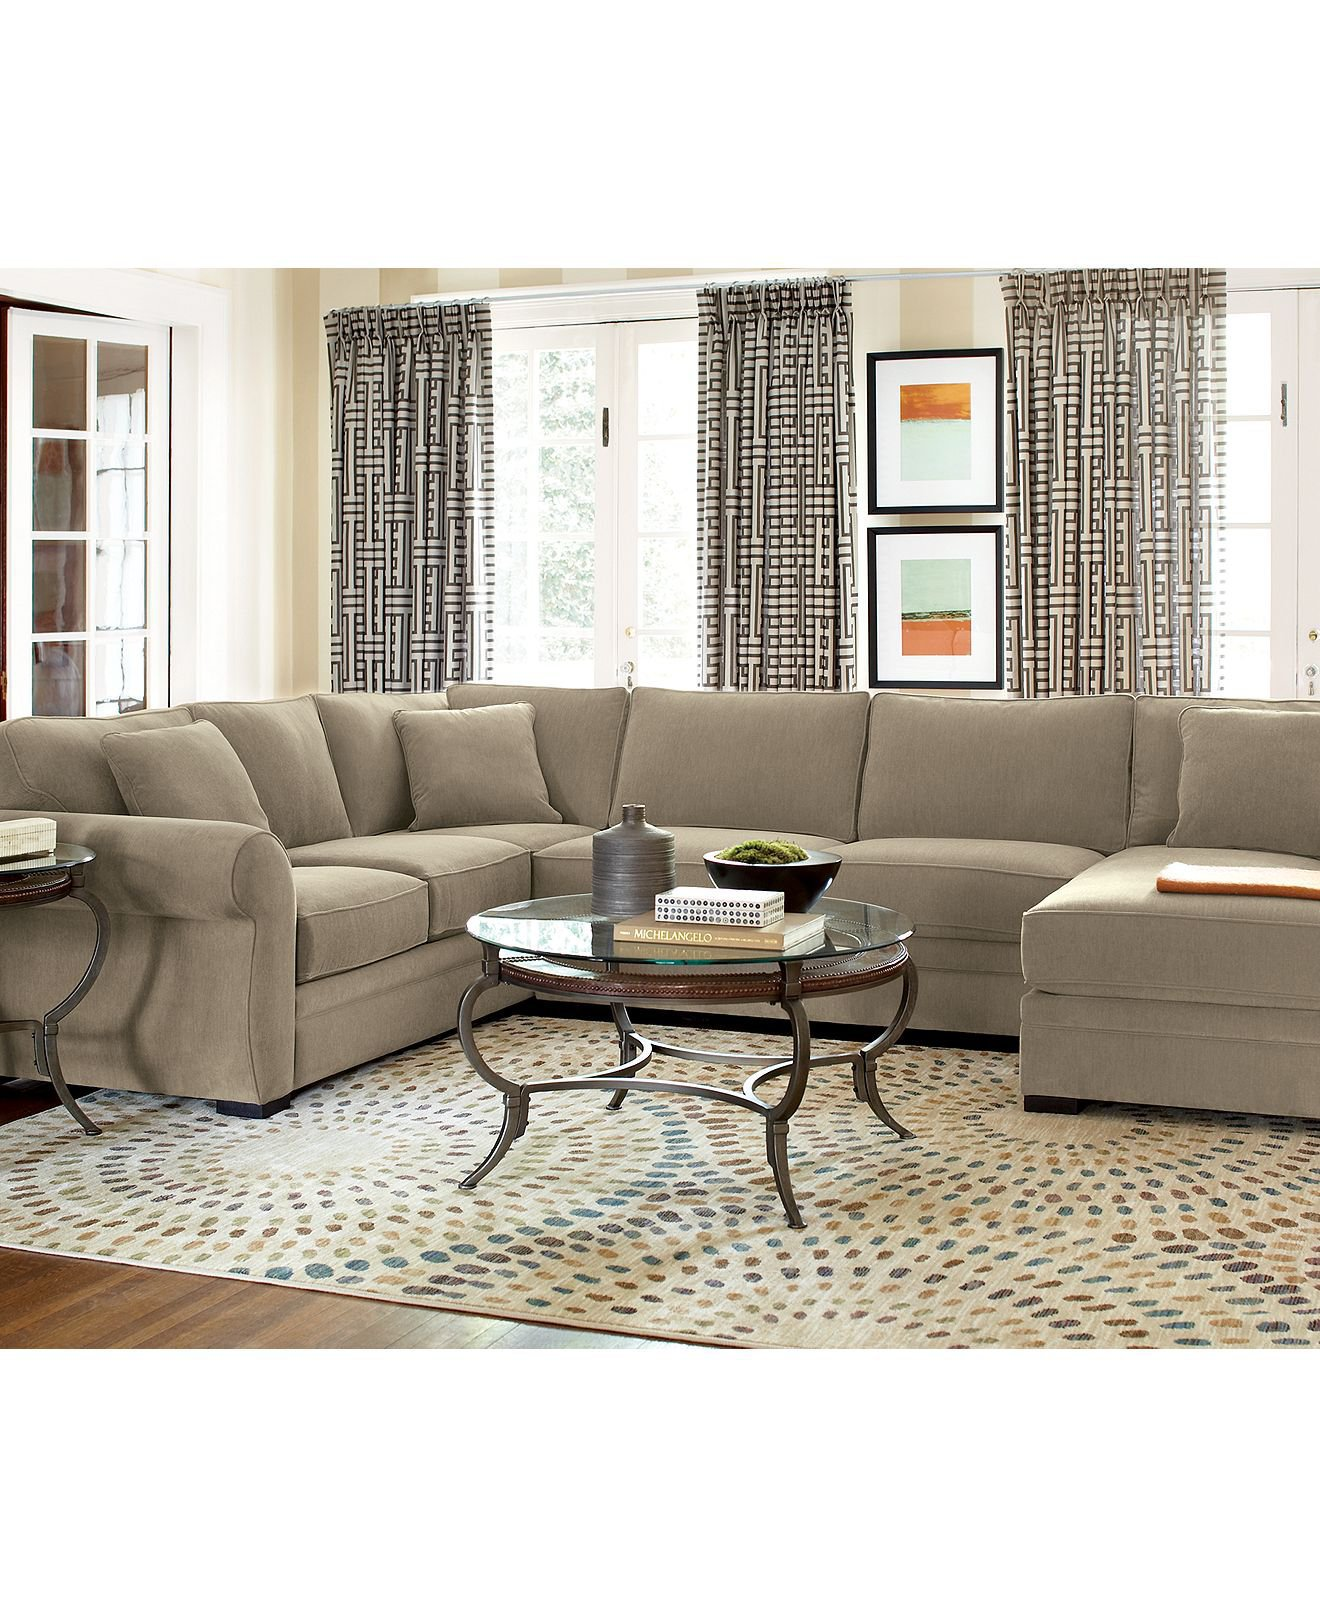 Devon living room furniture sets from macy 39 s the house for Living room furniture pieces